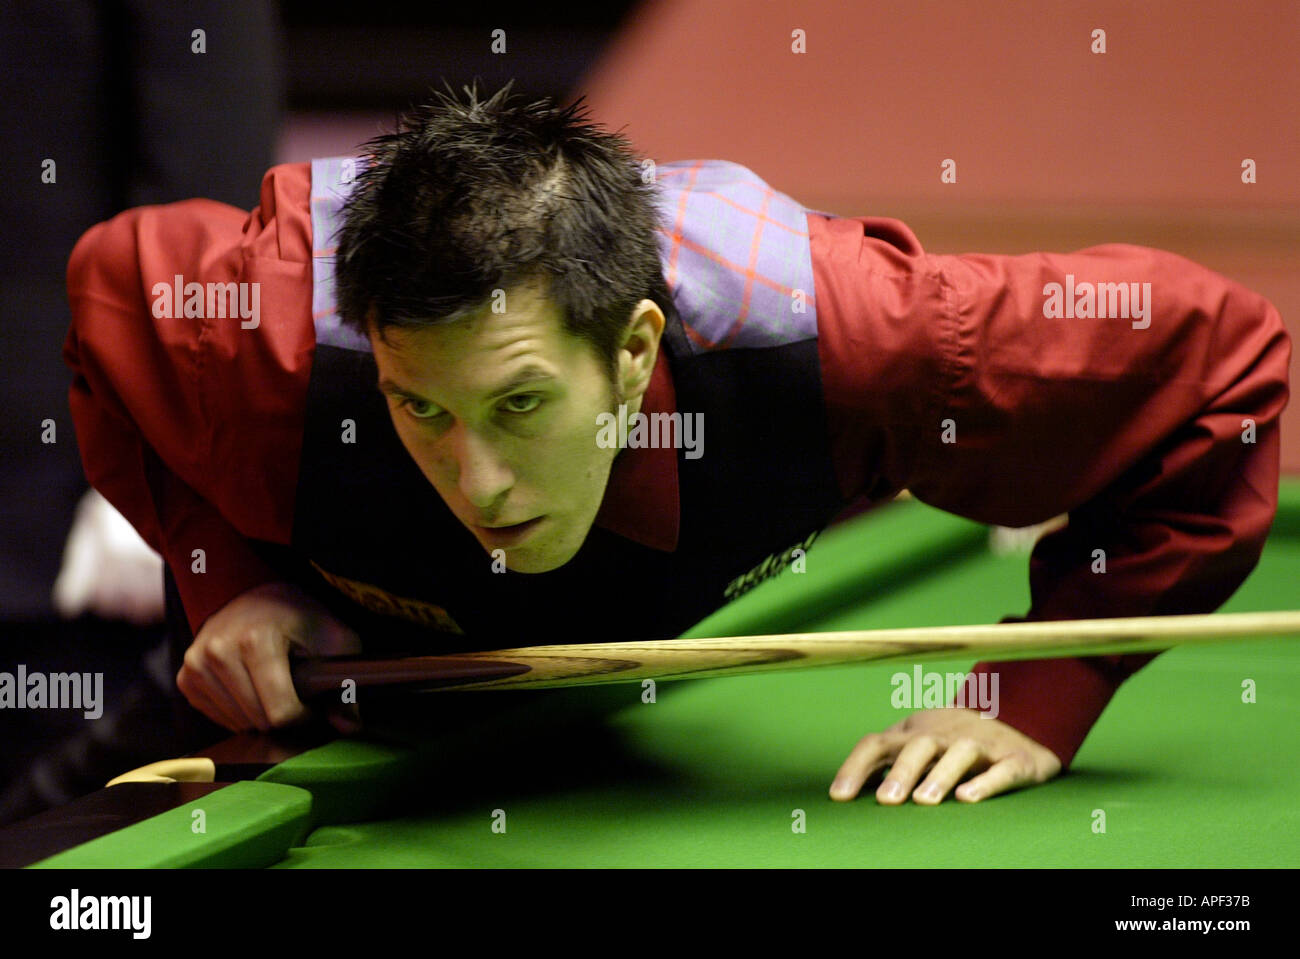 Dominic Dale playing in the 2004 World Snooker Championships at the Crucible Theatre Sheffield - Stock Image